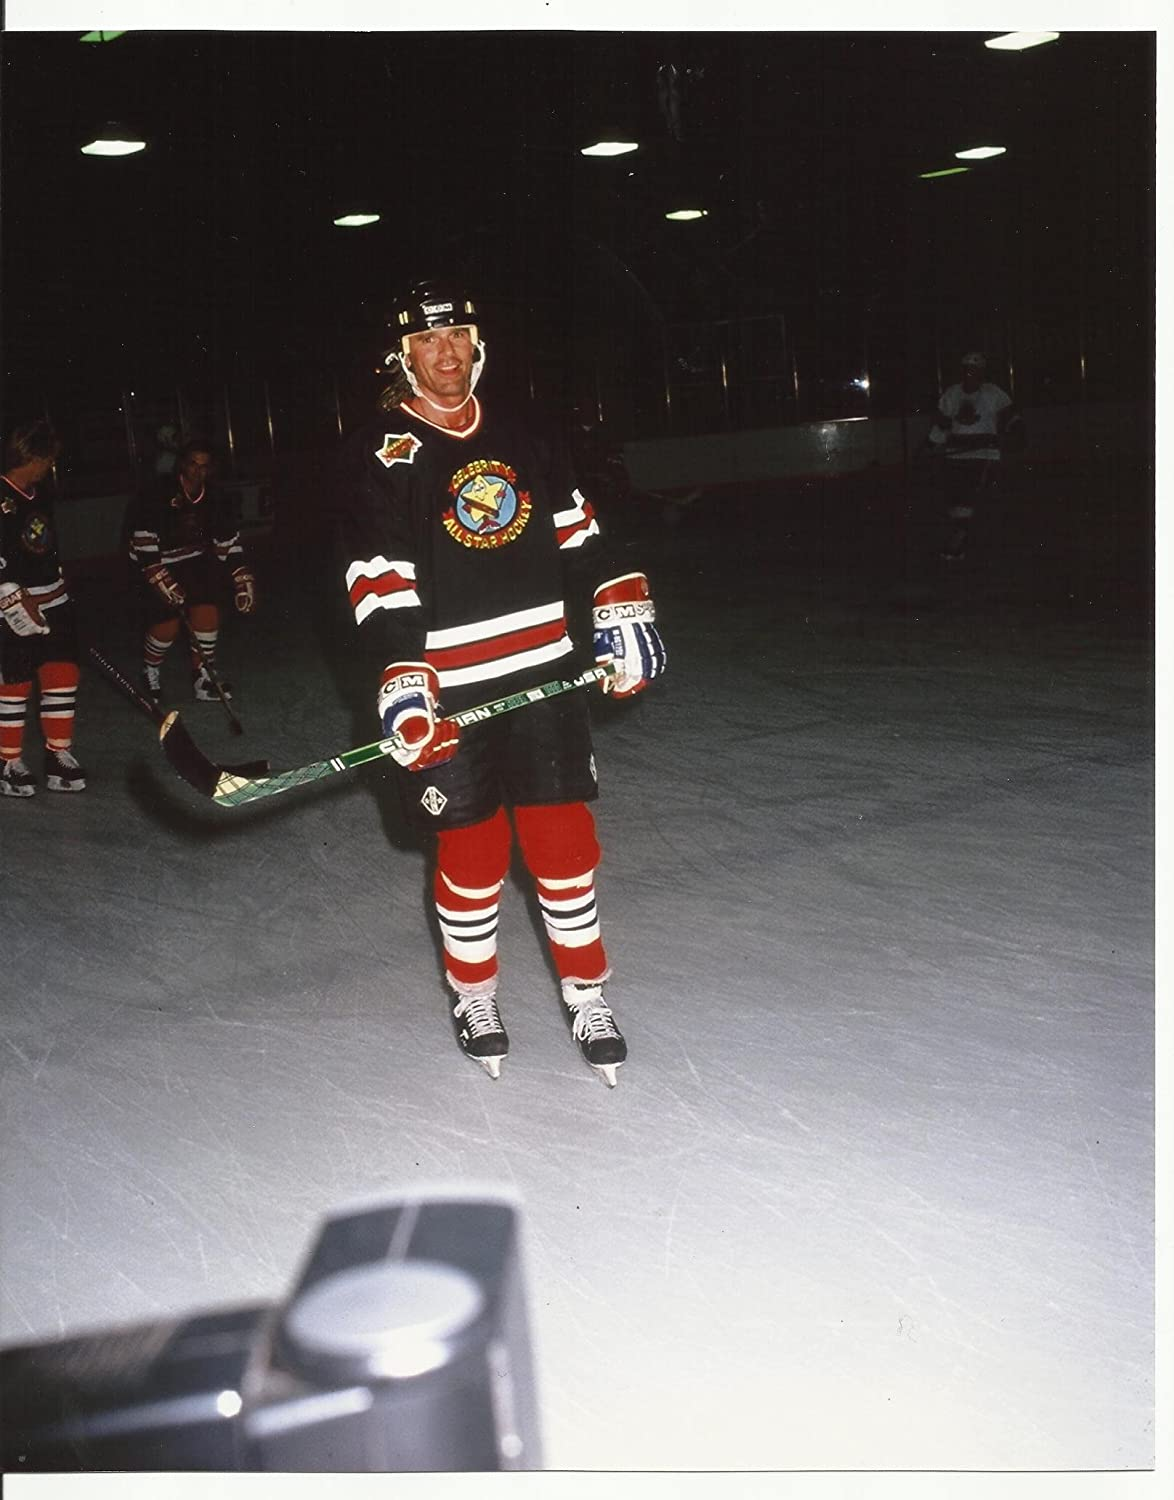 Richard Dean Anderson in Hockey Gear in The Rink 8 x 10 Photo